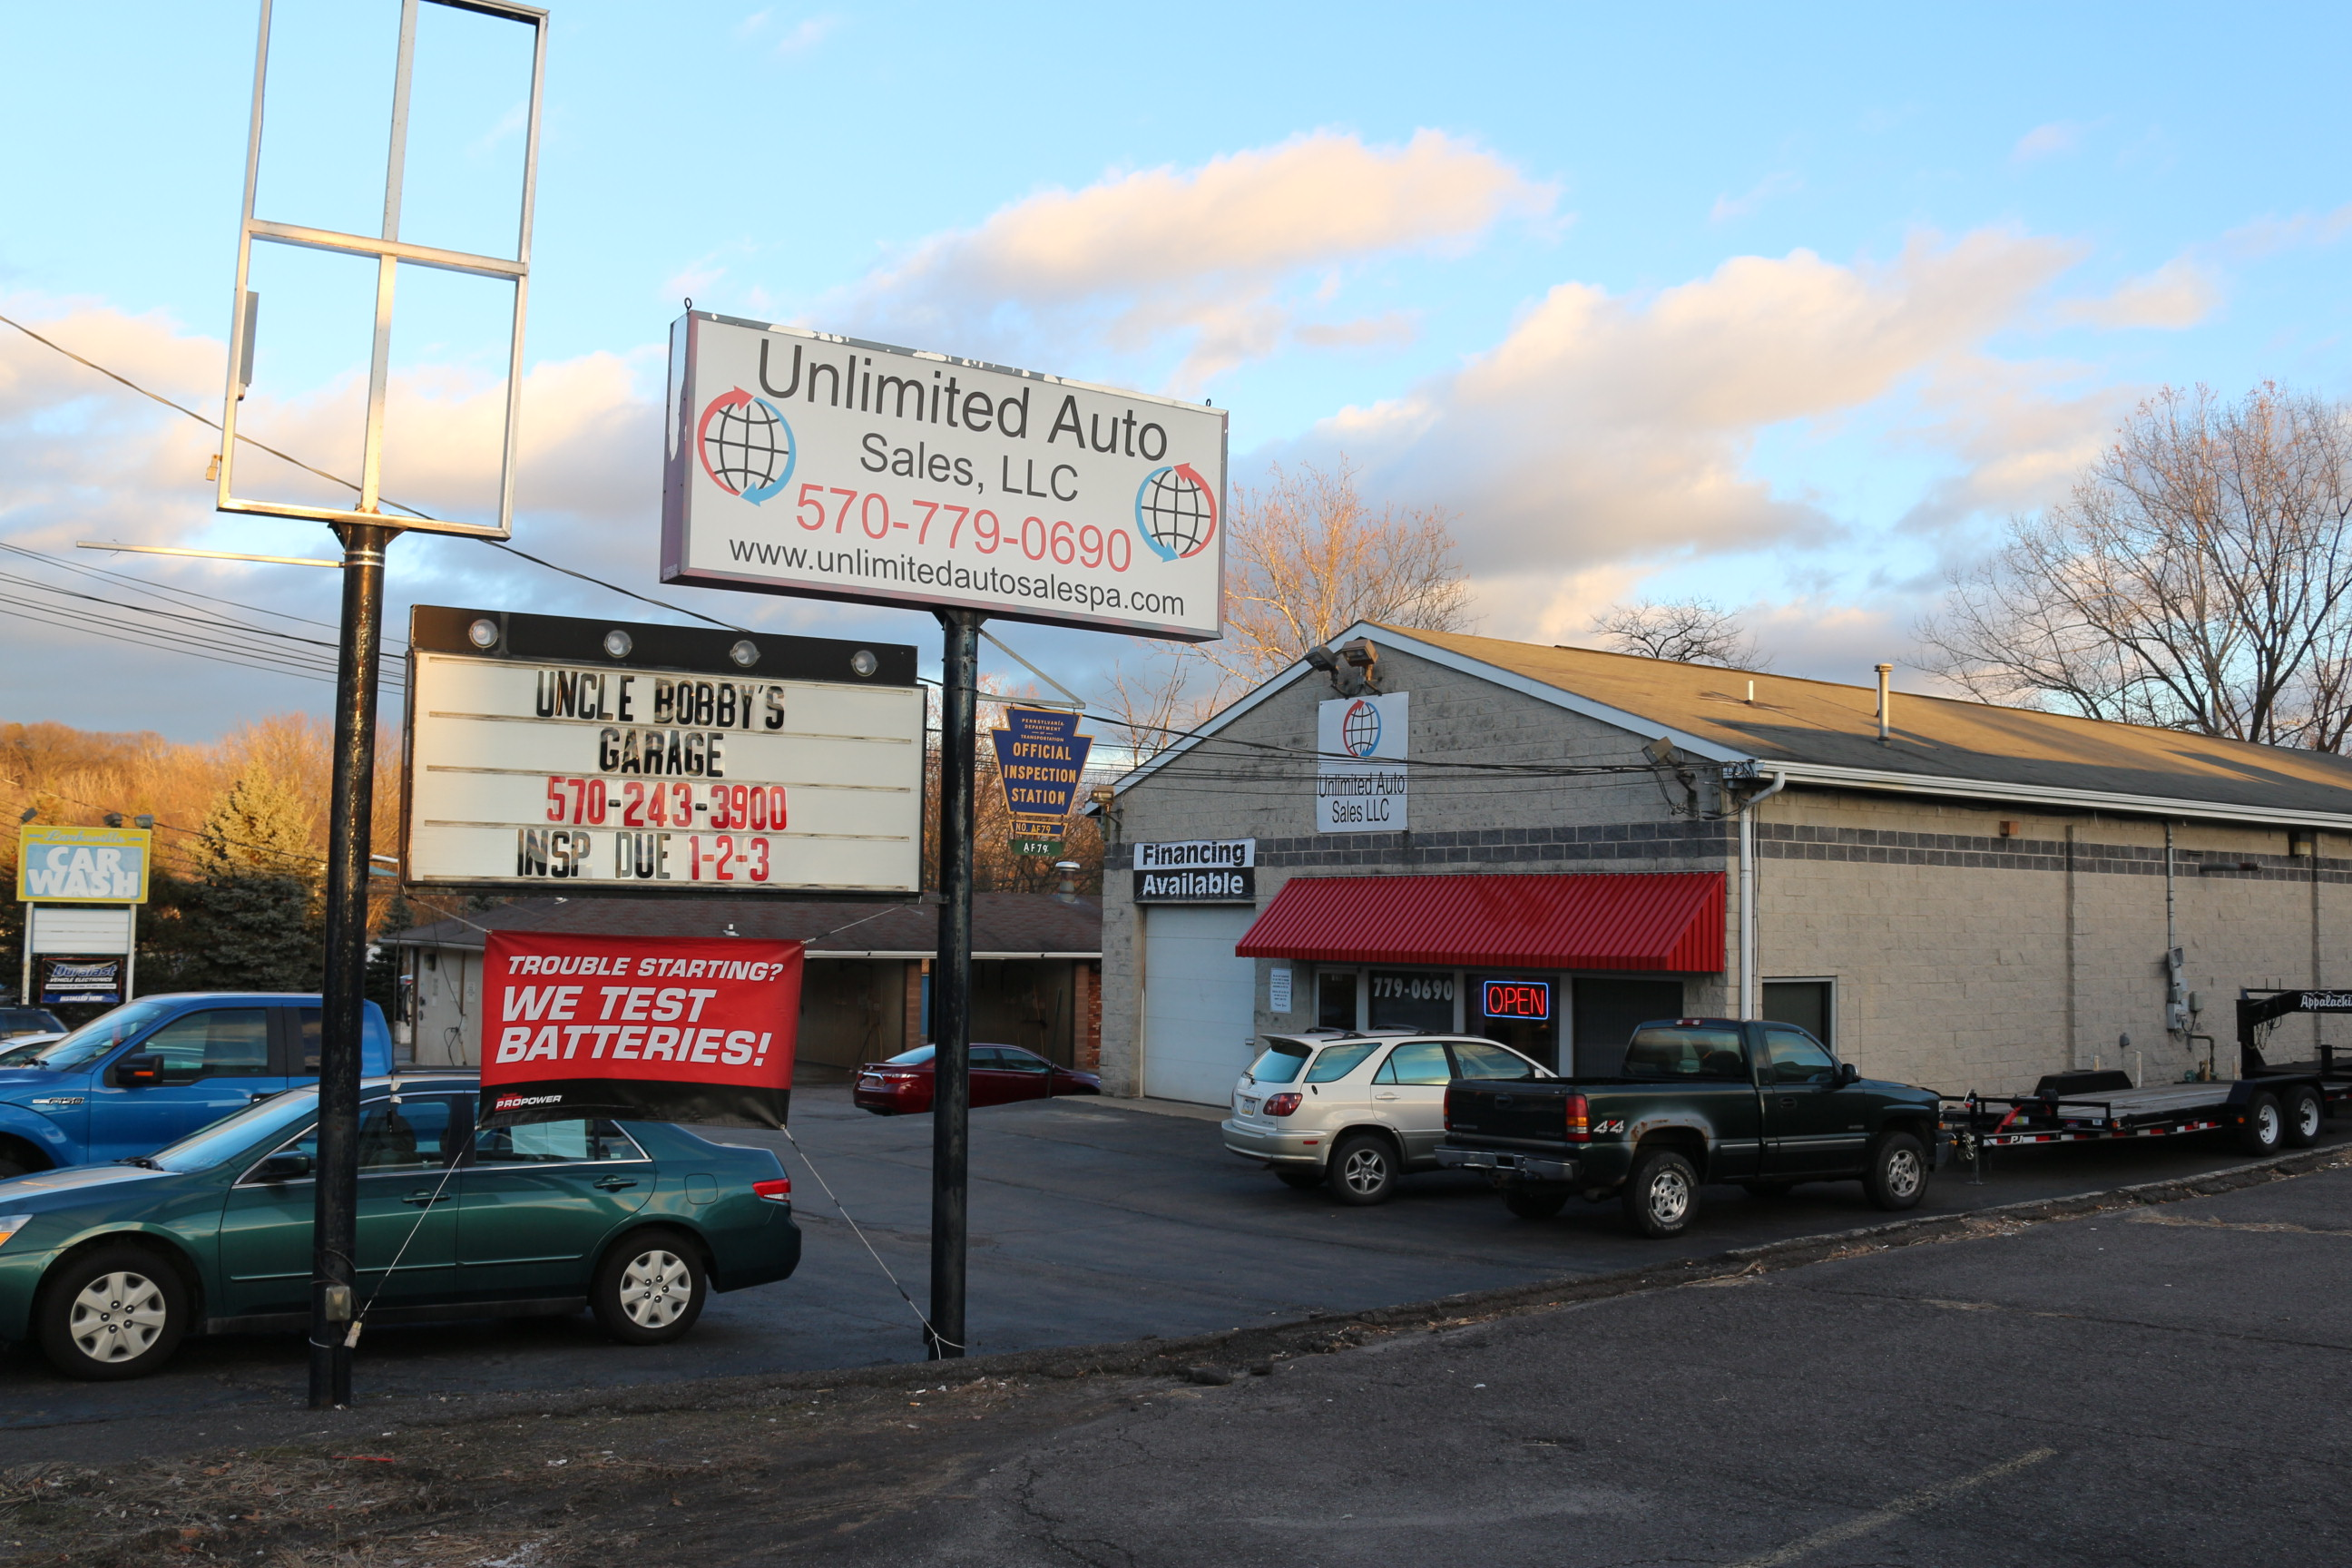 Bobbys Auto Sales >> Uncle Bobby S Garage Llc Auto And Light Truck Repair